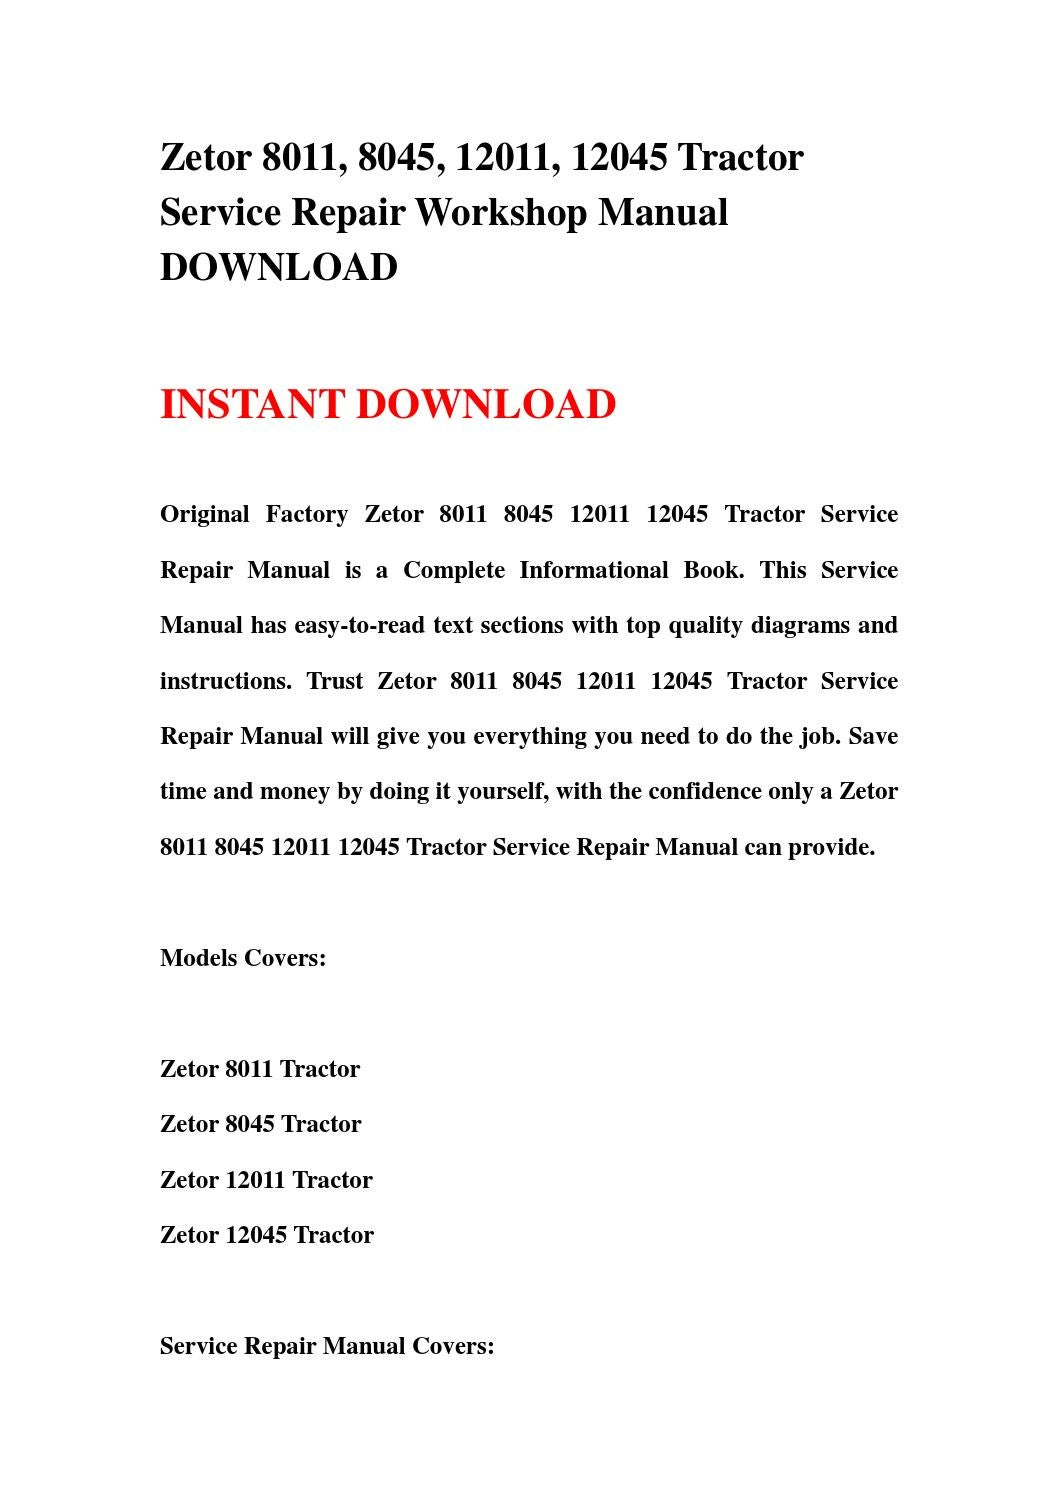 Zetor 8011, 8045, 12011, 12045 tractor service repair workshop manual  download by jfgsehfnn - issuu